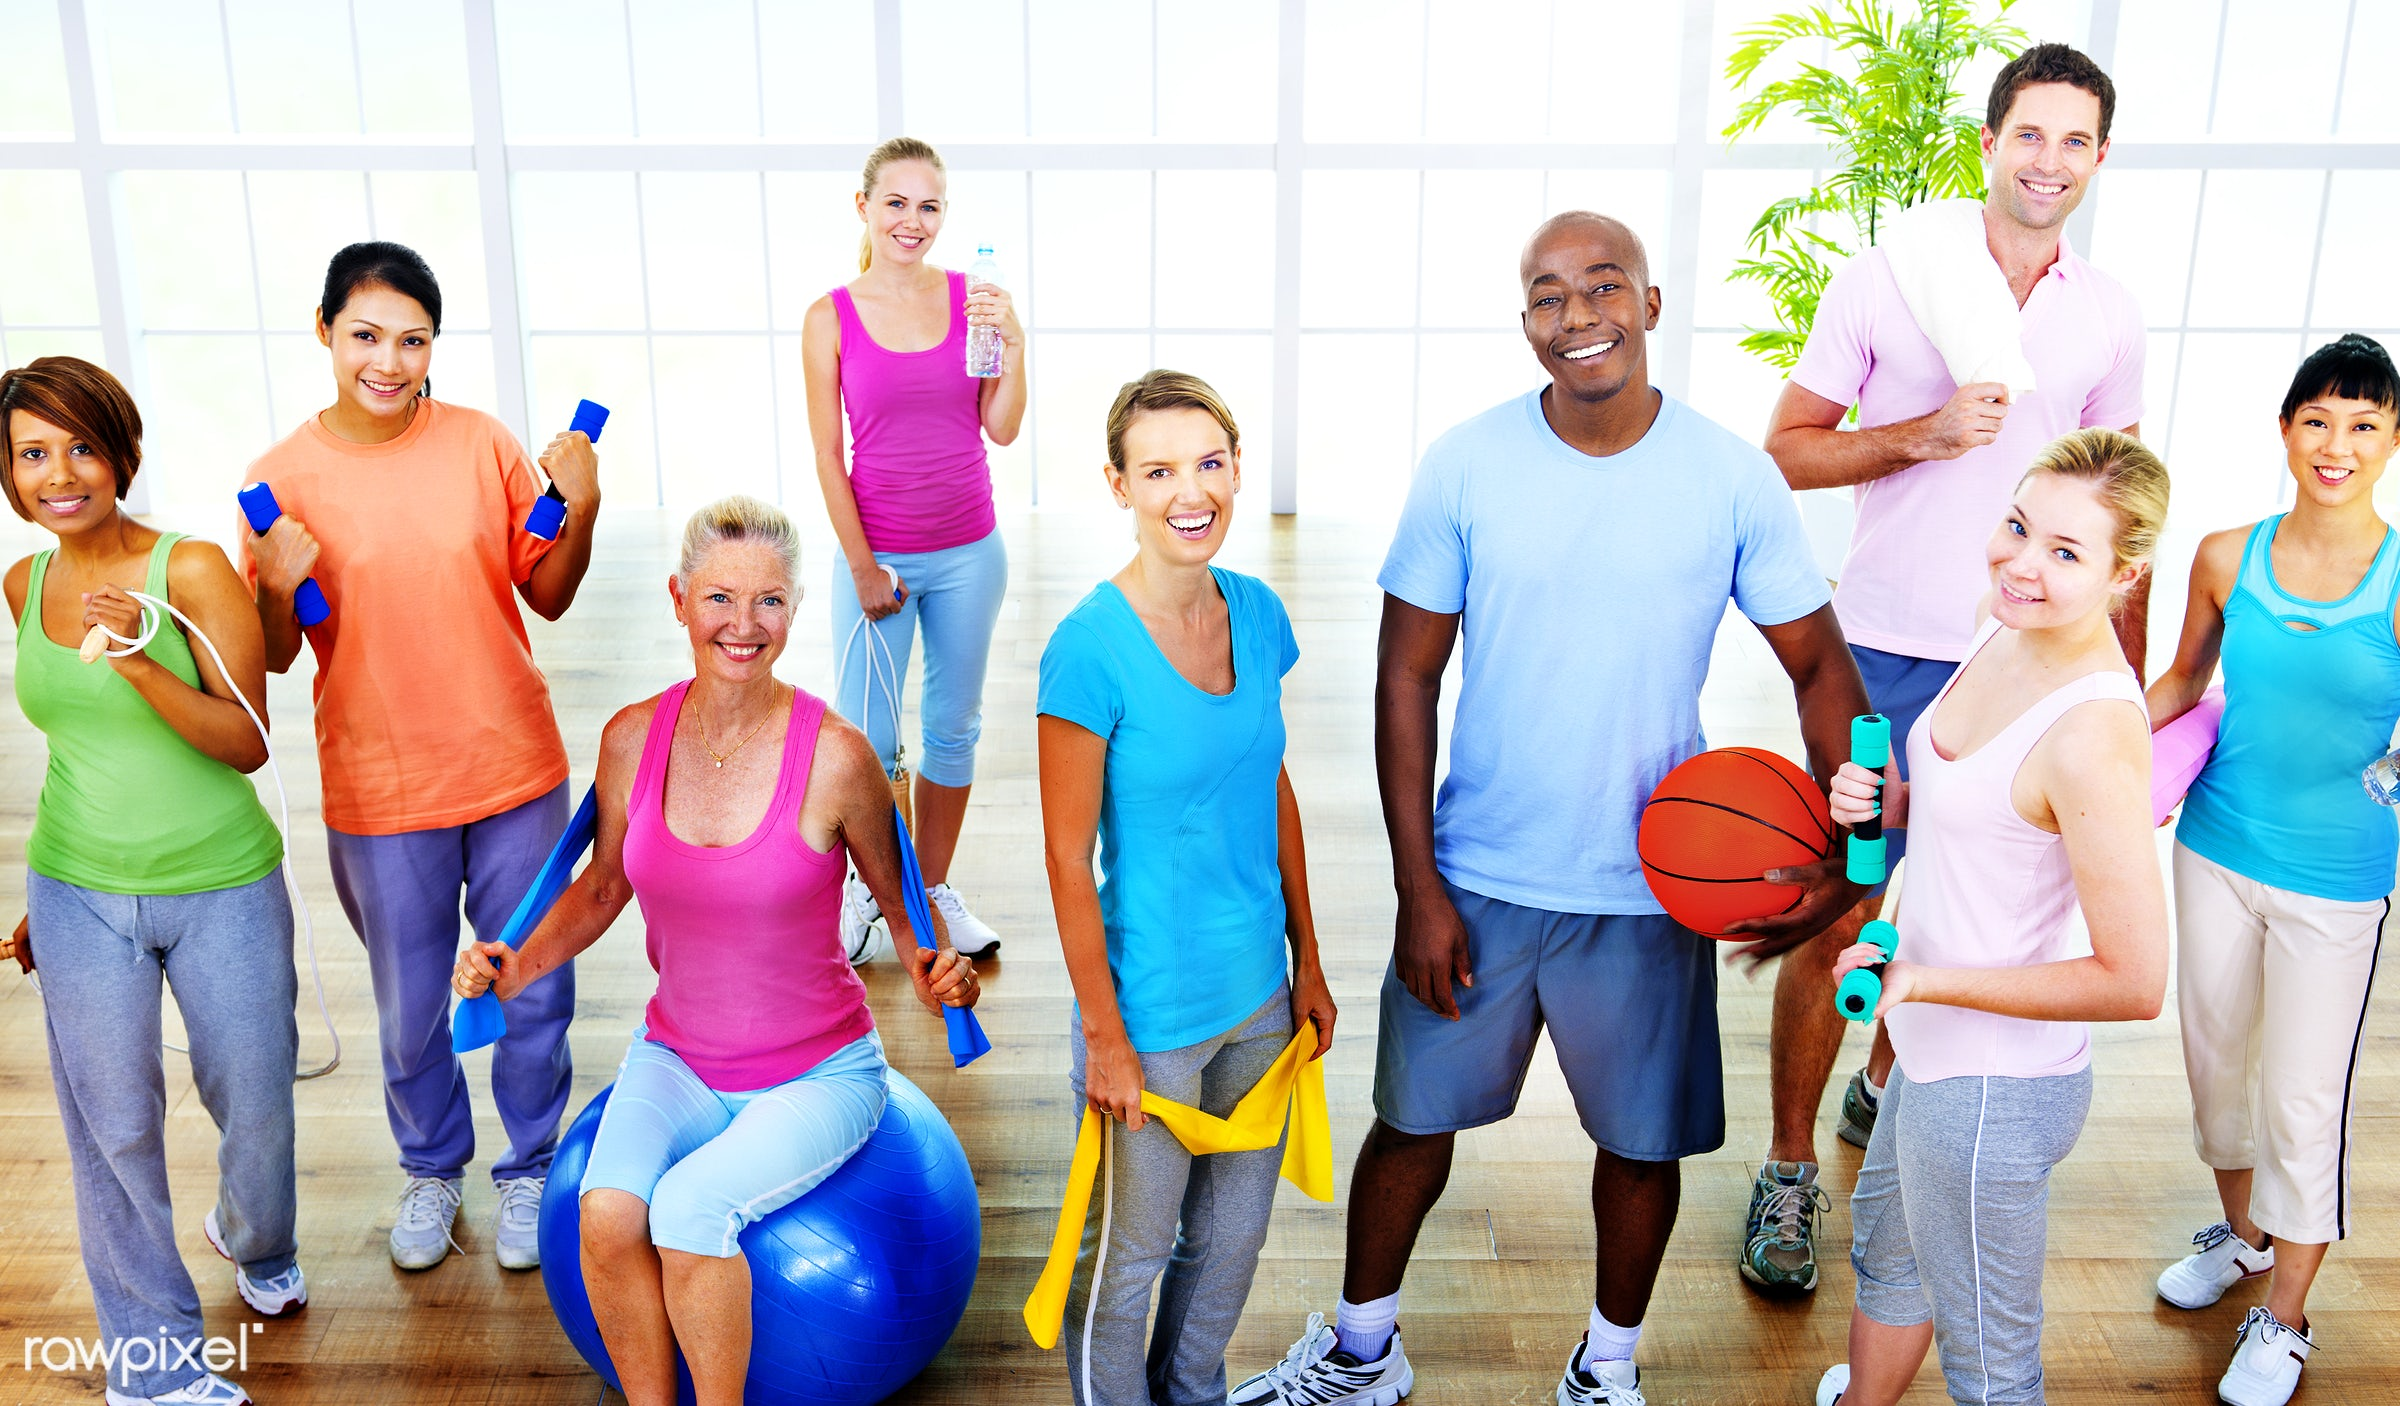 lifestyles, activity, african descent, asian ethnicity, cheerful, diverse, diversity, dumbbell, equipment, exercising, fit,...